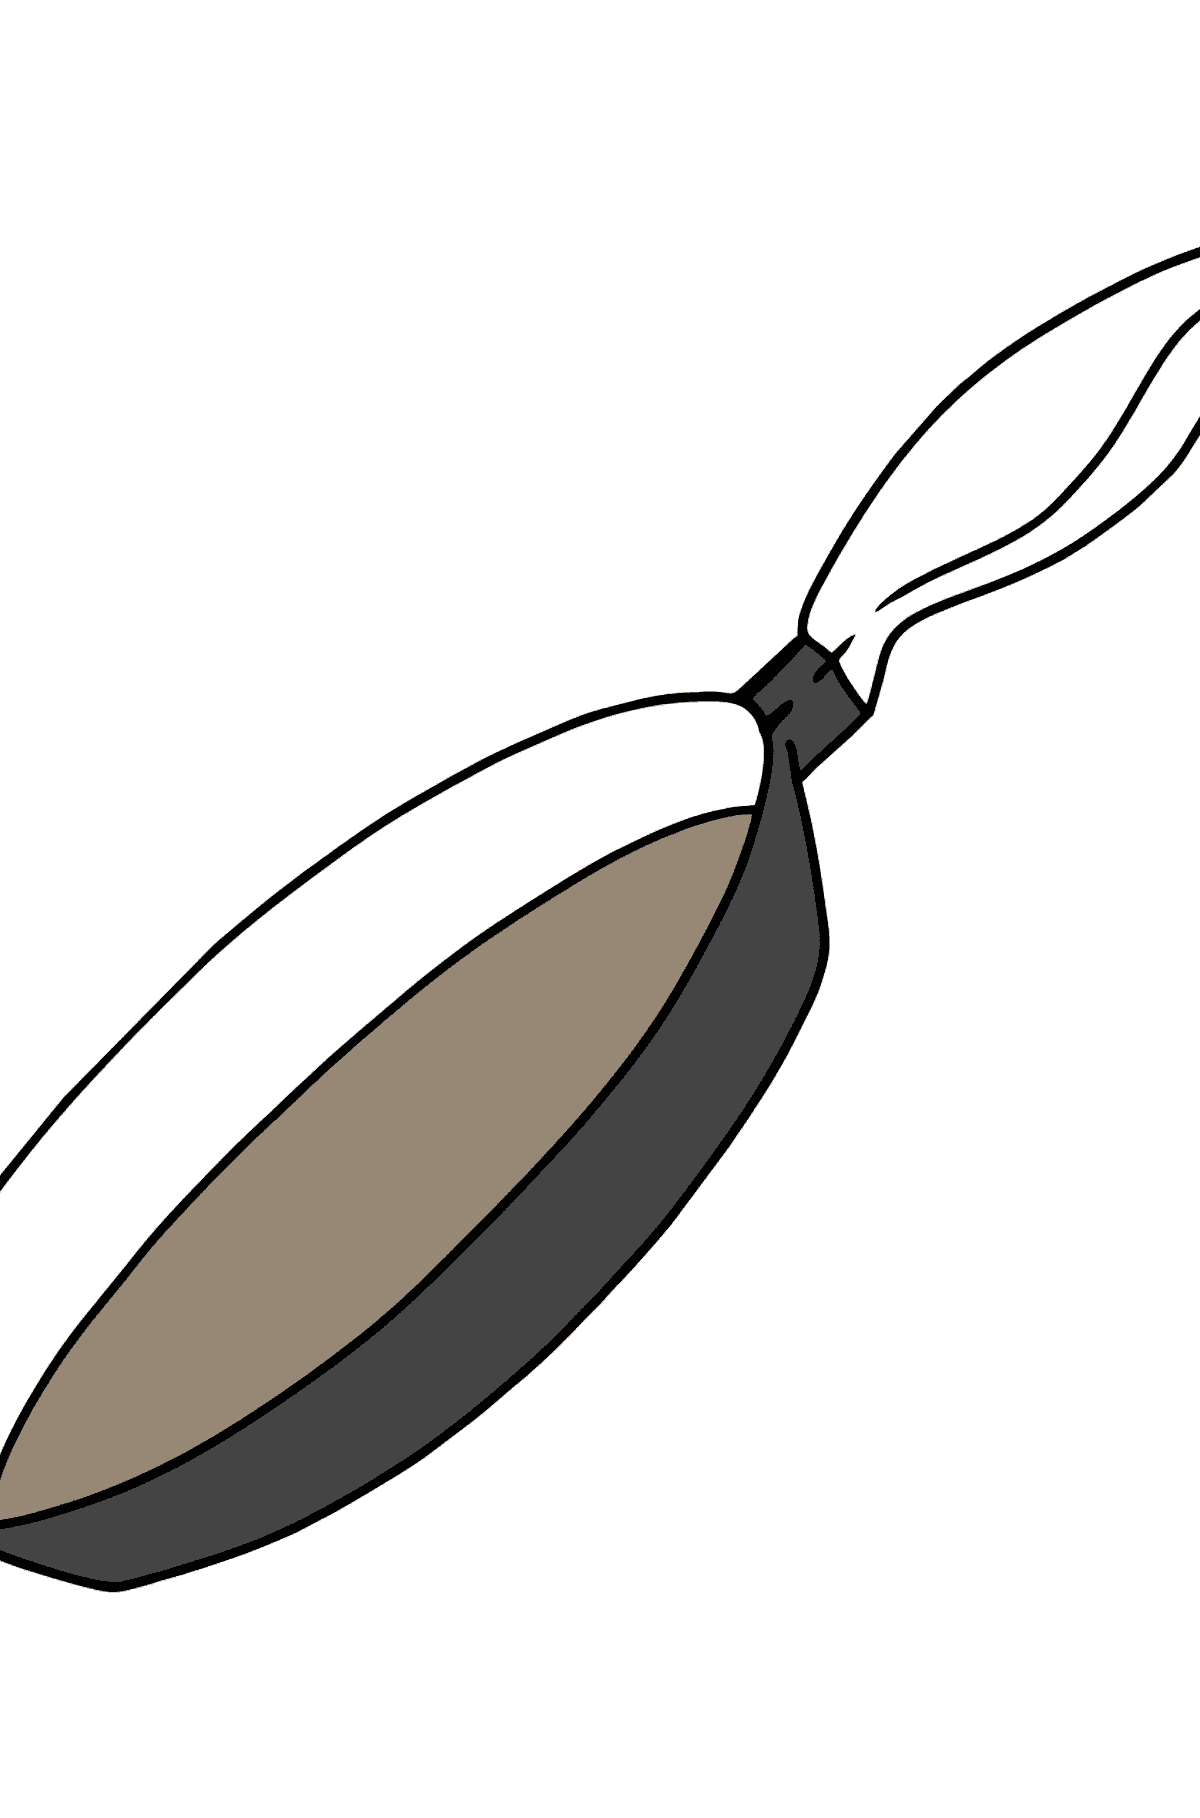 Frying Pan coloring page - Coloring Pages for Kids